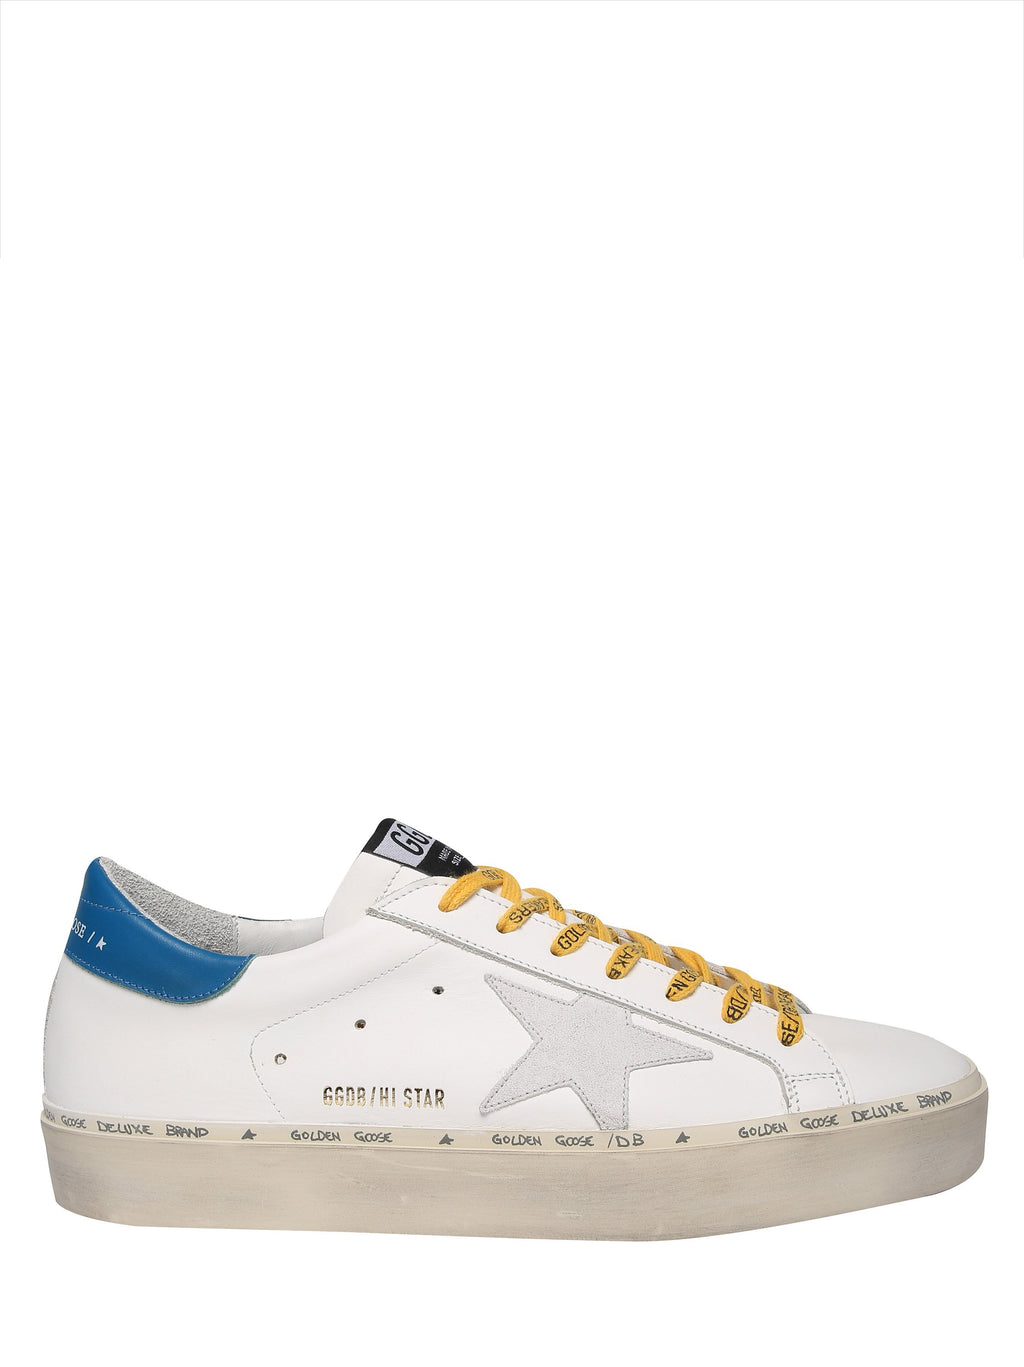 GOLDEN GOOSE Hi Star model leather sneakers